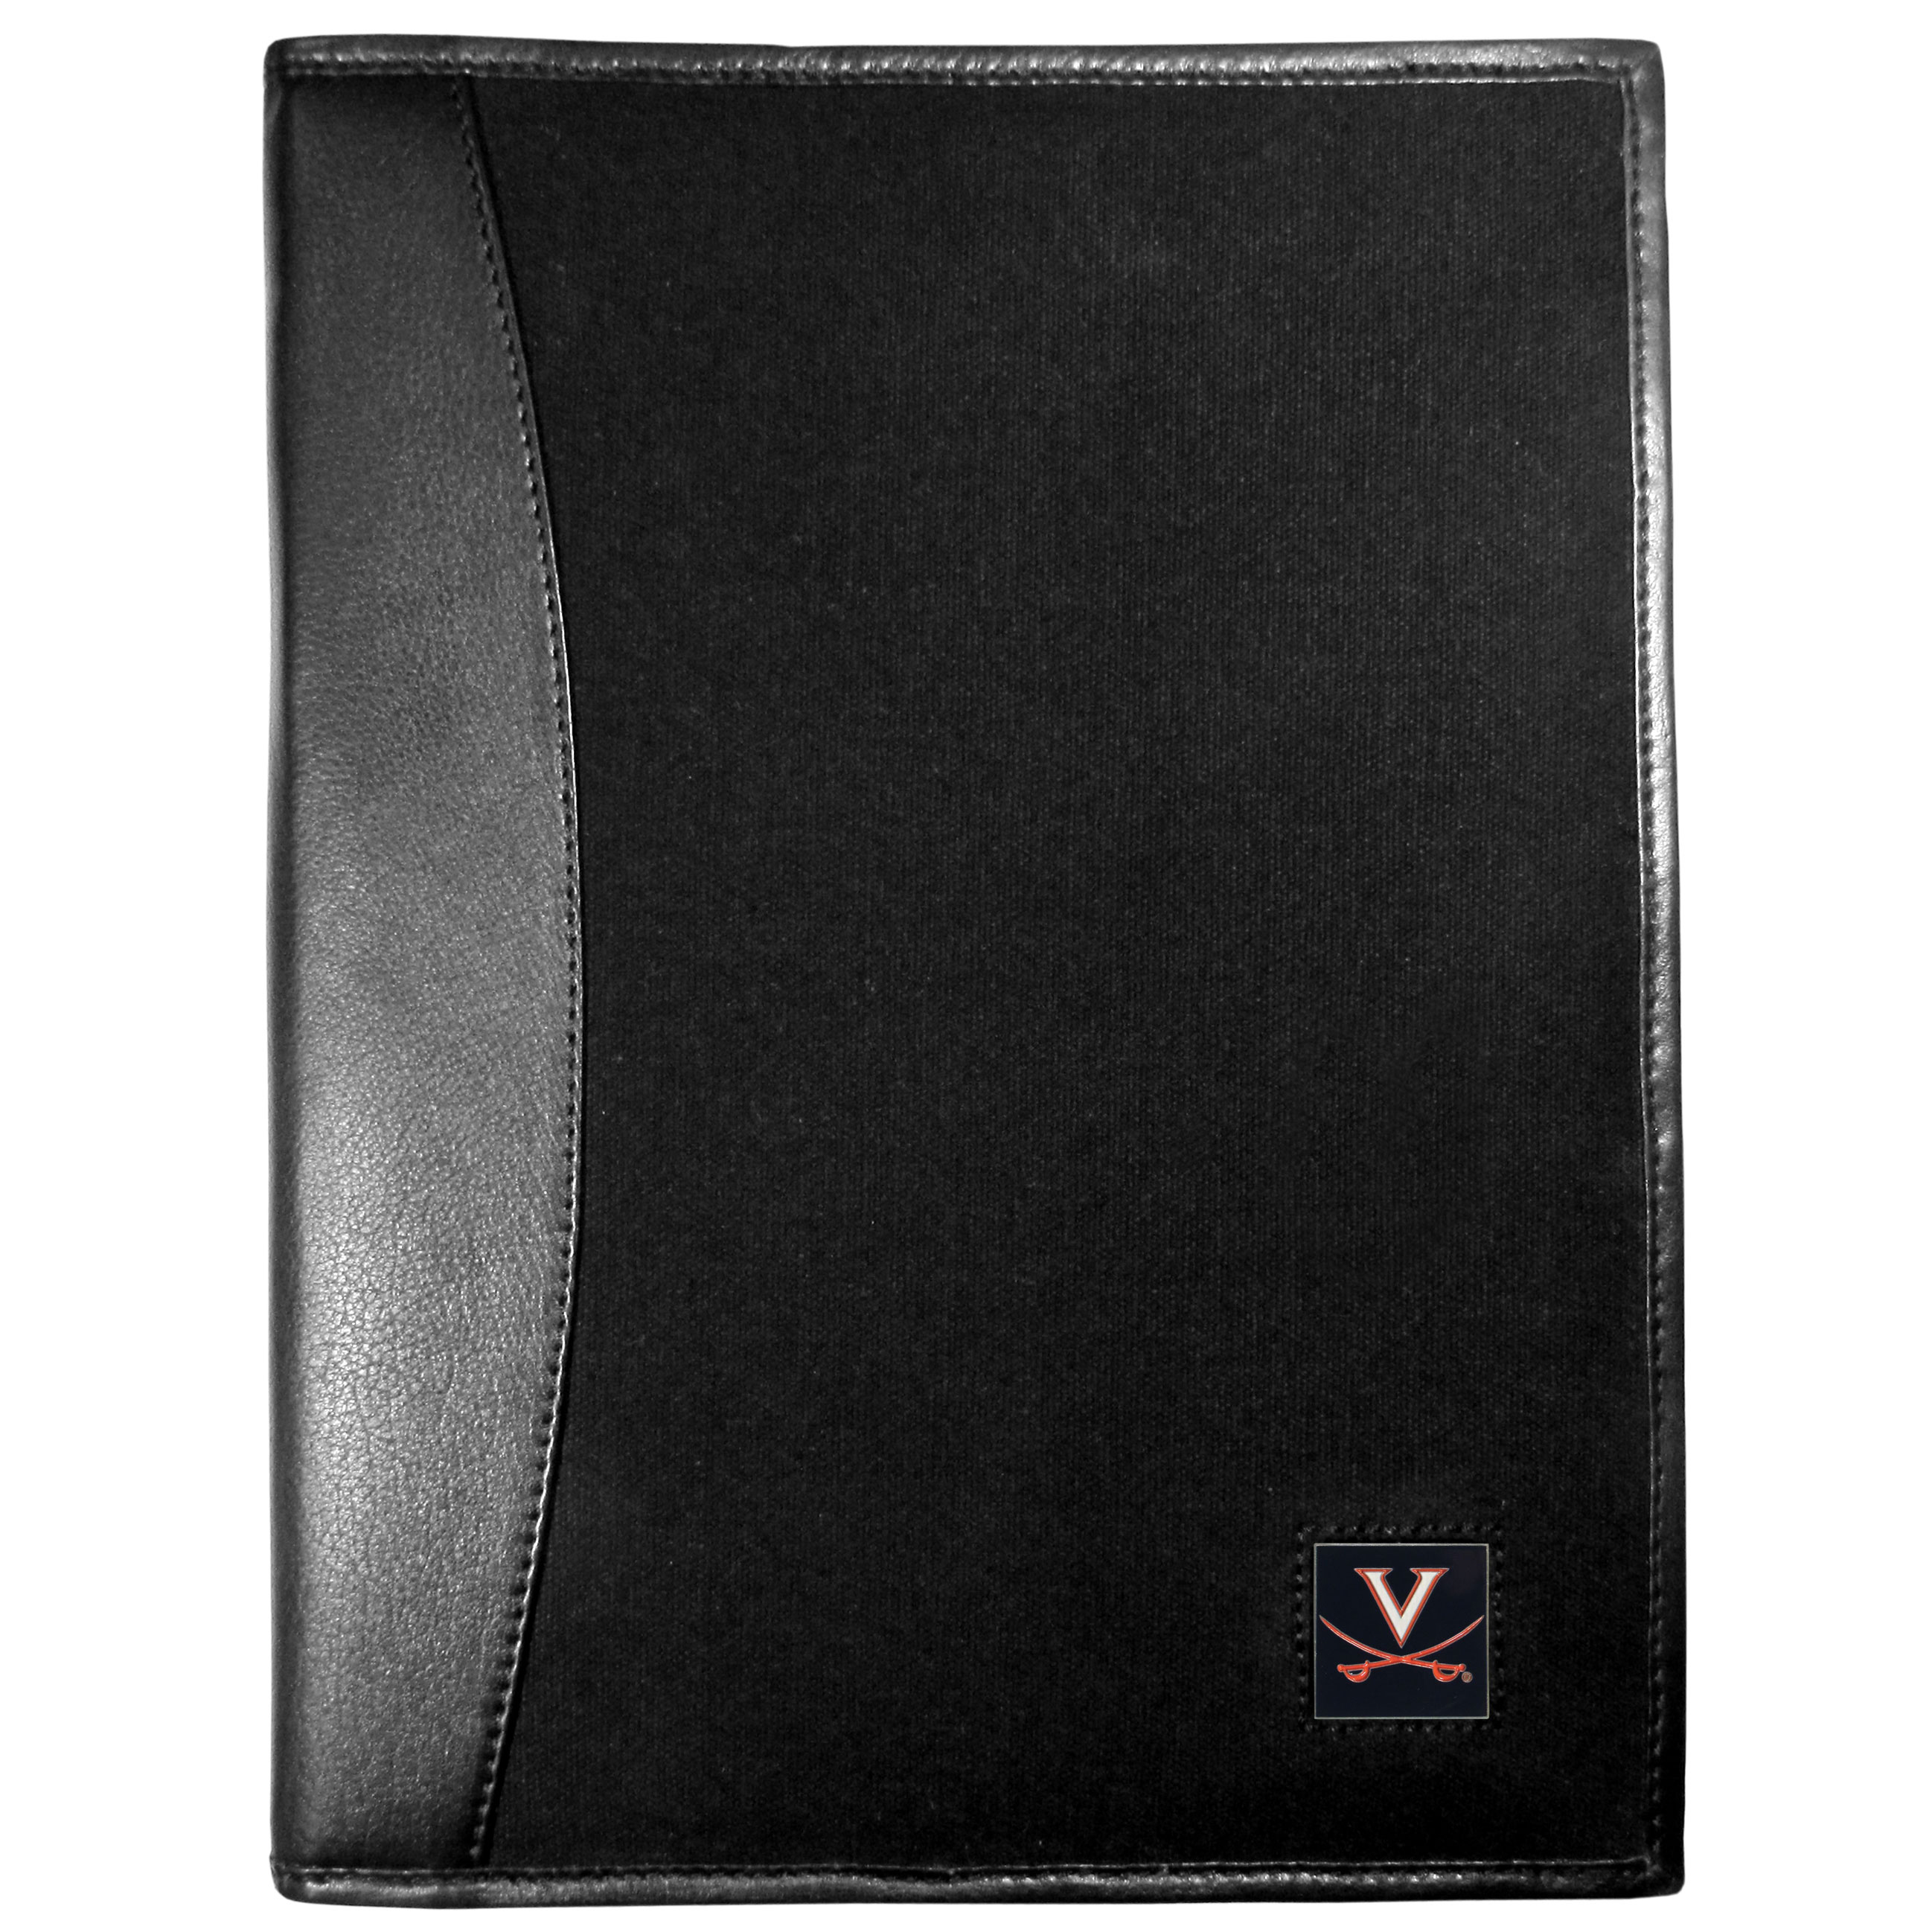 Virginia Cavaliers Leather and Canvas Padfolio - Our leather and canvas padfolio perfectly blends form and function. The attractive portfolio is bound in fine grain leather with an attractive canvas finish and the interior is a soft nylon. This high quality business accessory also features a fully cast metal Virginia Cavaliers emblem that is subtly set in the corner of the organizer. It is packed with features like 6 card slots for badges, business cards, hotel keys or credit cards and ID with a large pocket for loose papers and a writing tablet slot making it a must-have for the professional on the go.